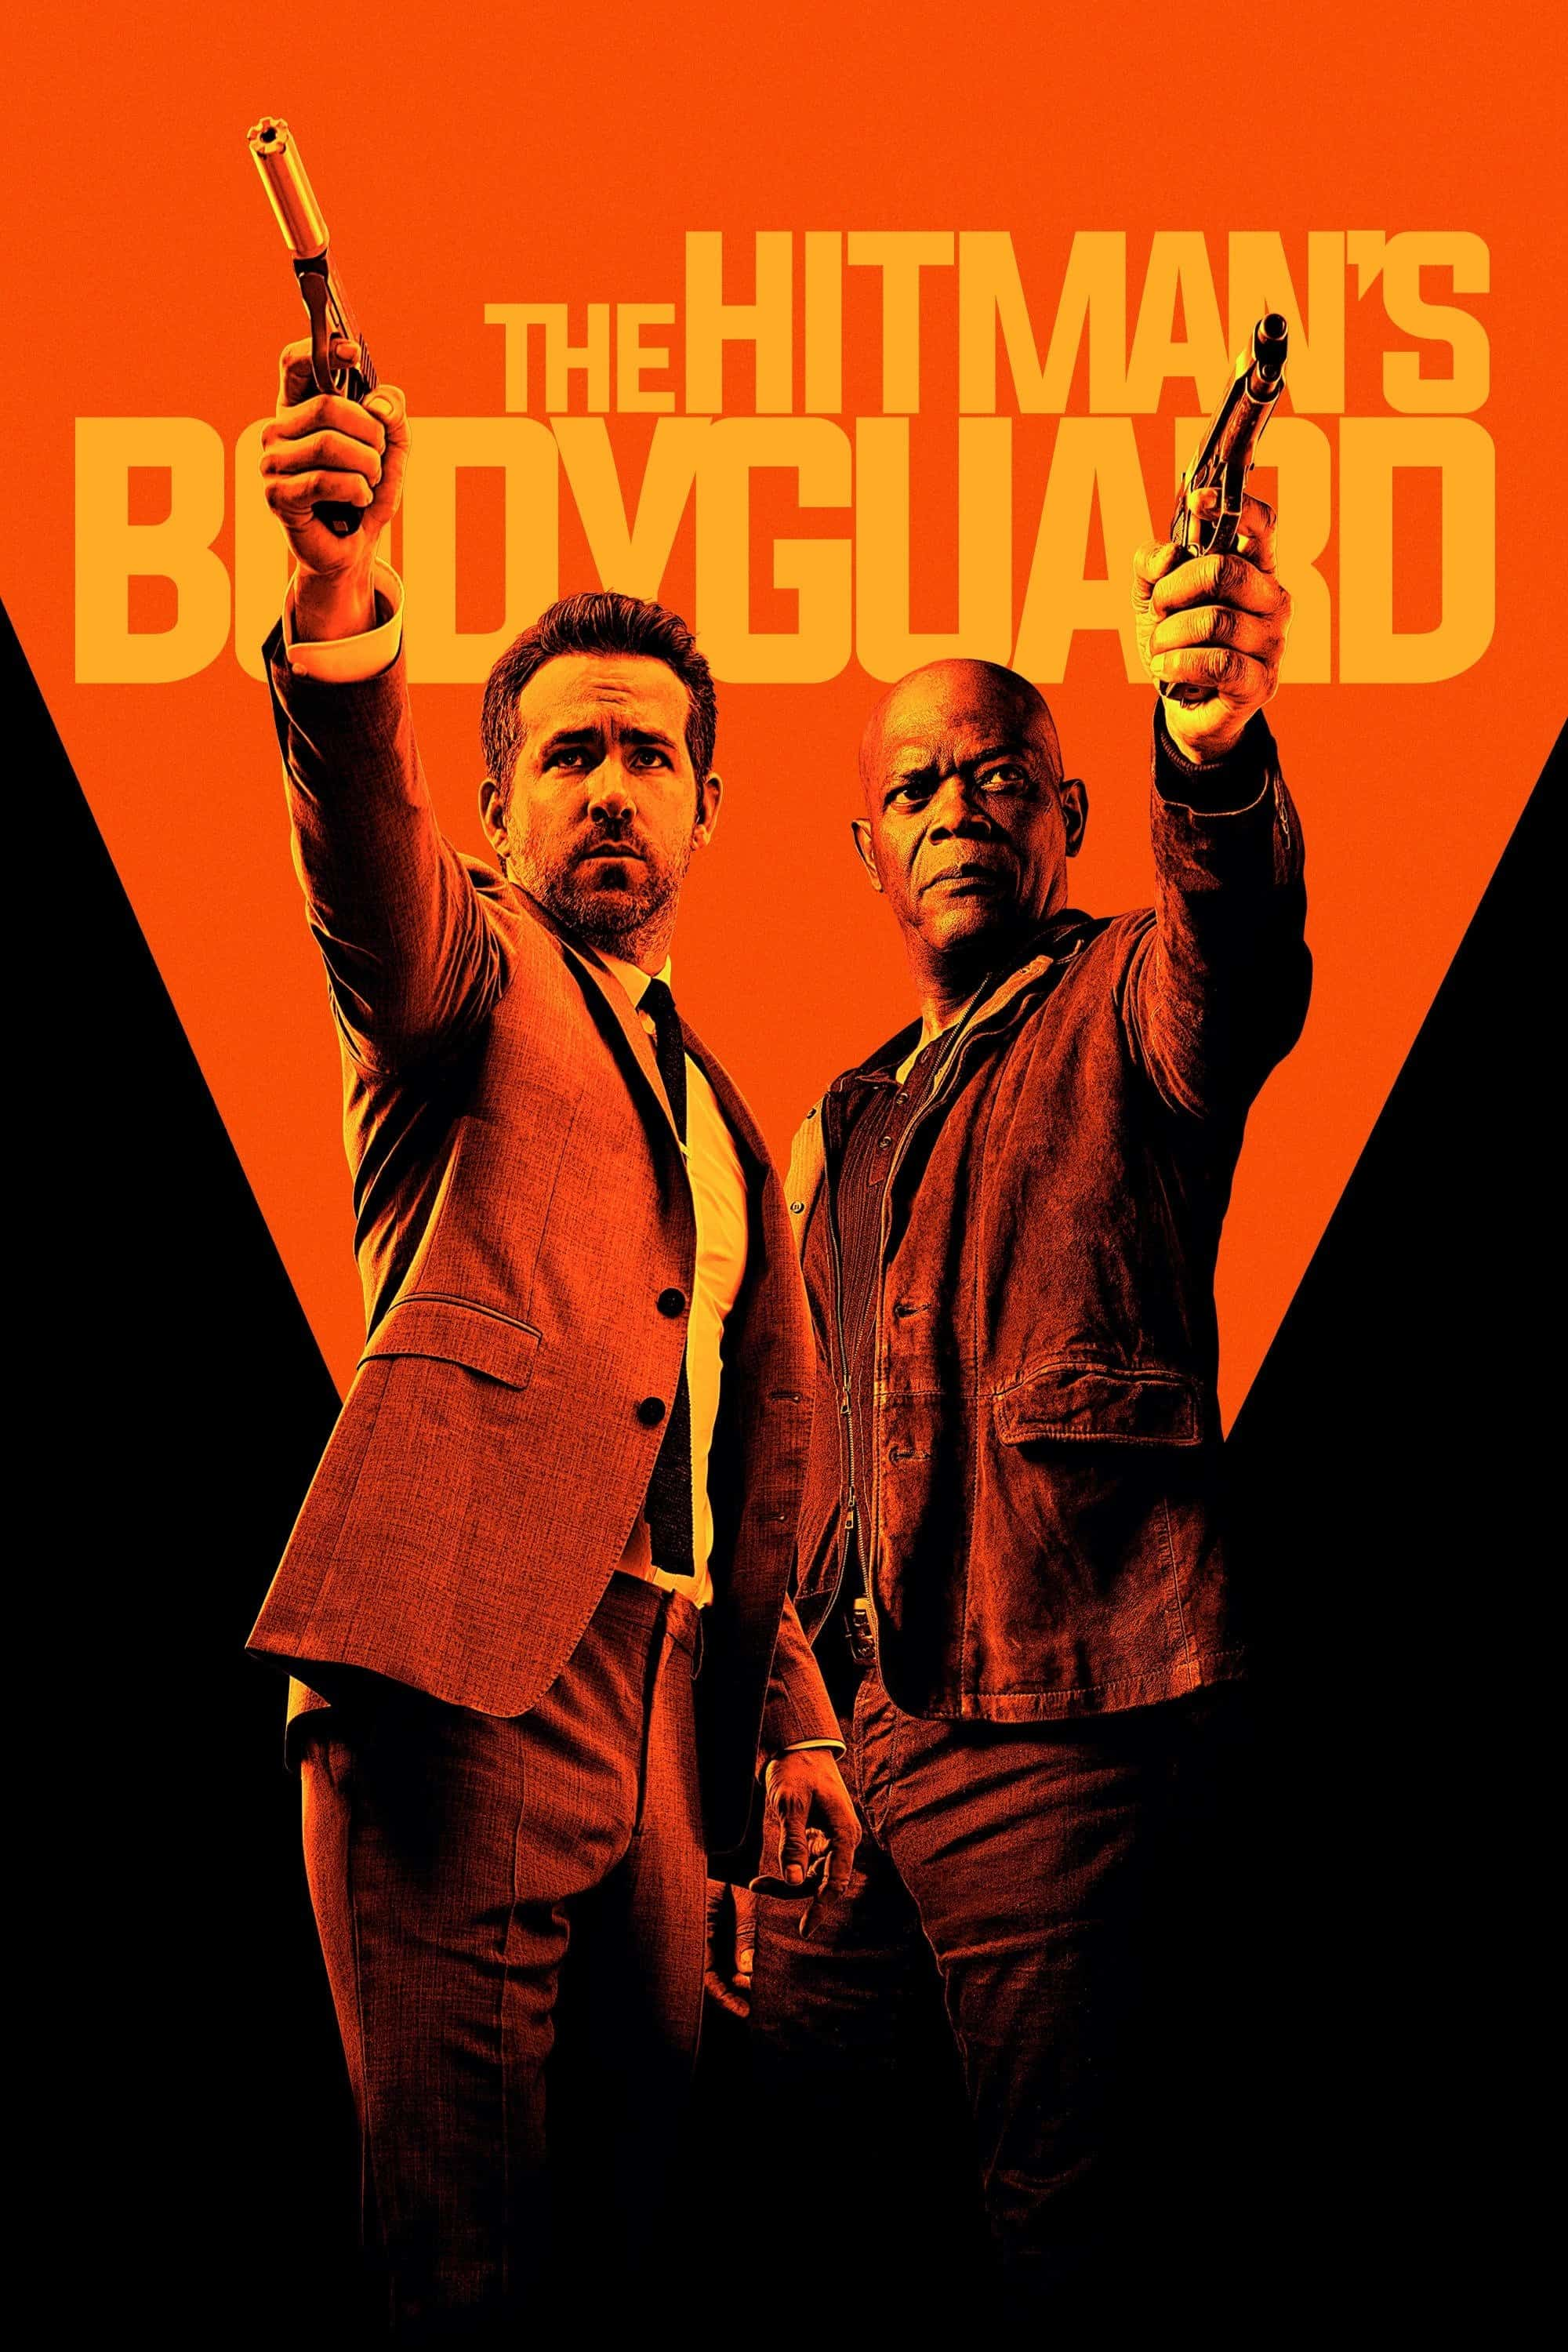 The Hitman's Bodyguard, 2017